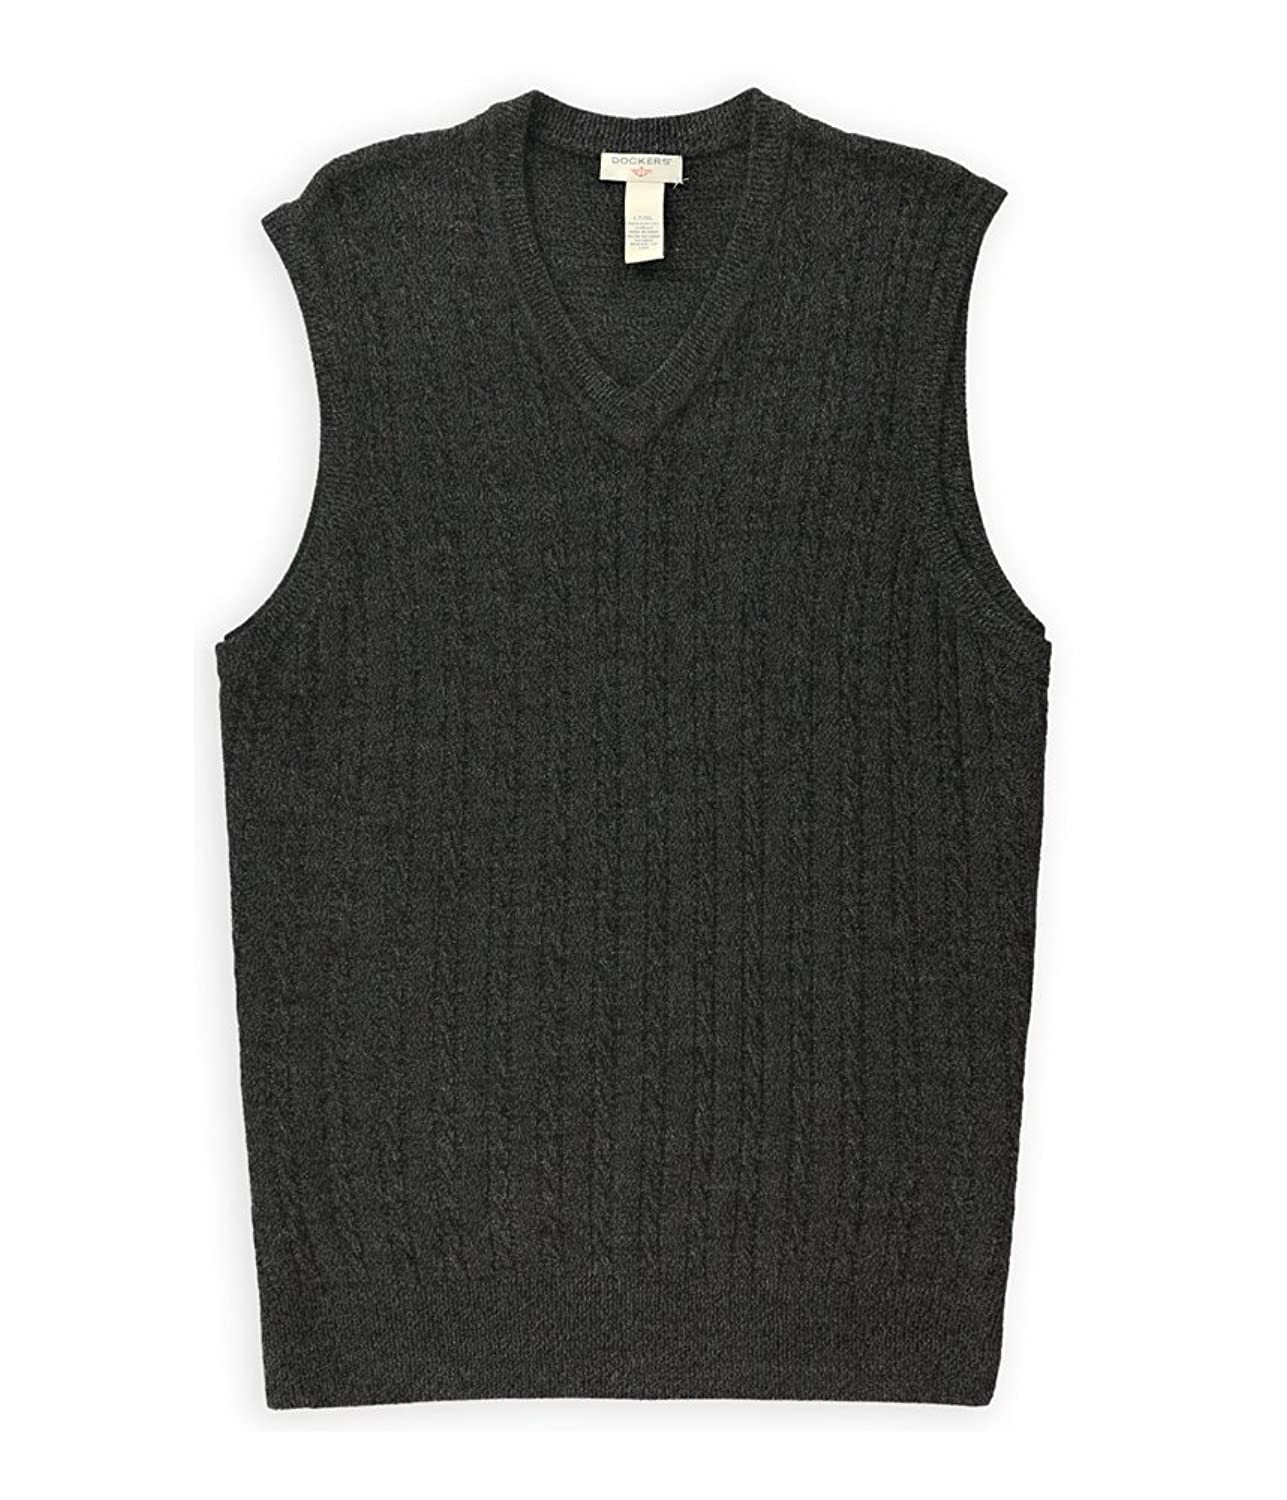 Dockers Mens Cable-Knit Sweater Vest